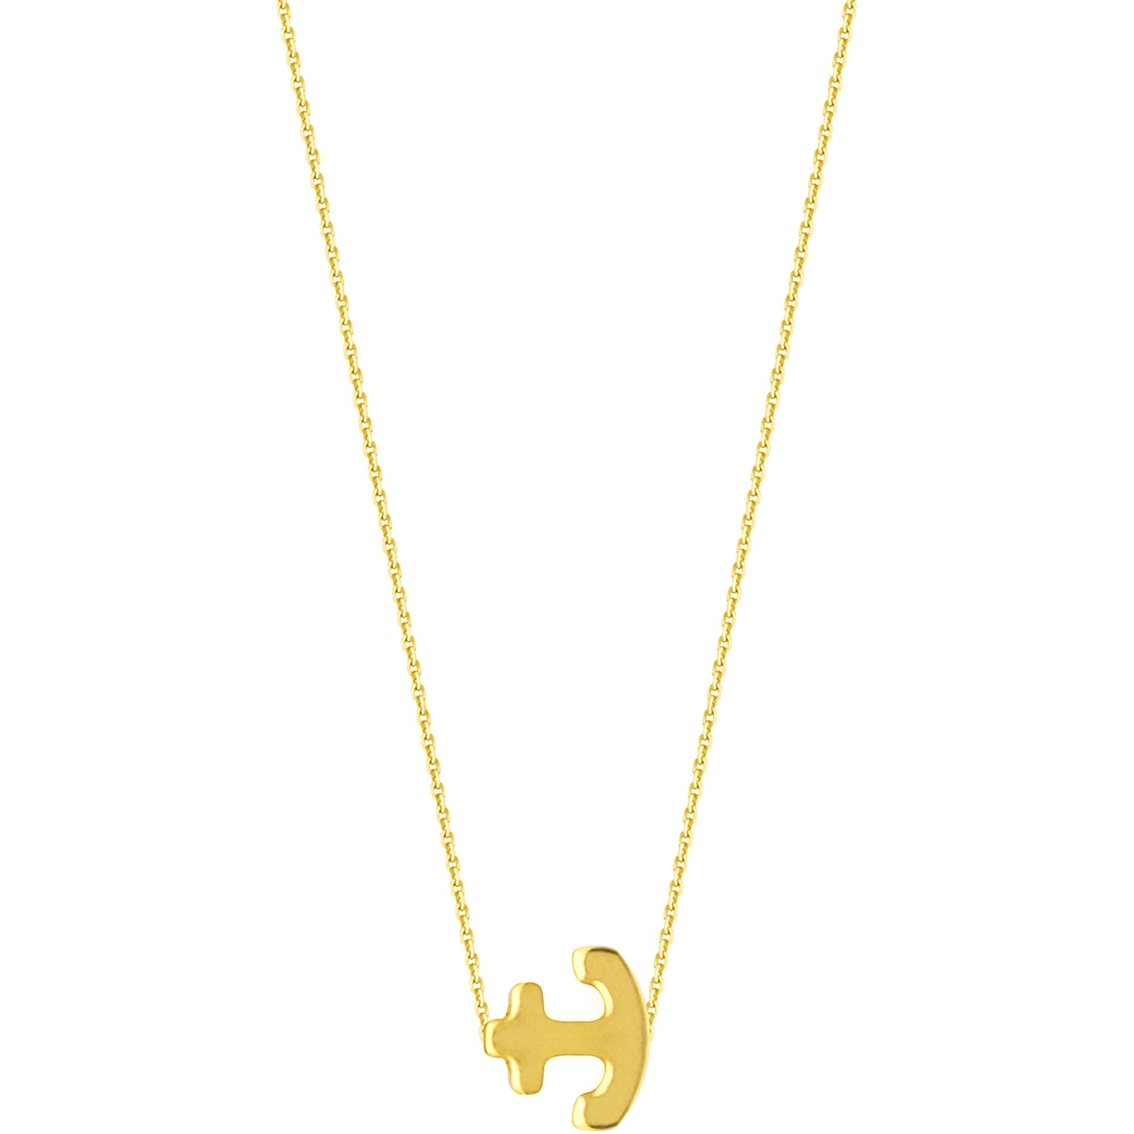 Midas chain 14k yellow gold round nameplate necklace gold midas chain 14k yellow gold round nameplate necklace aloadofball Images